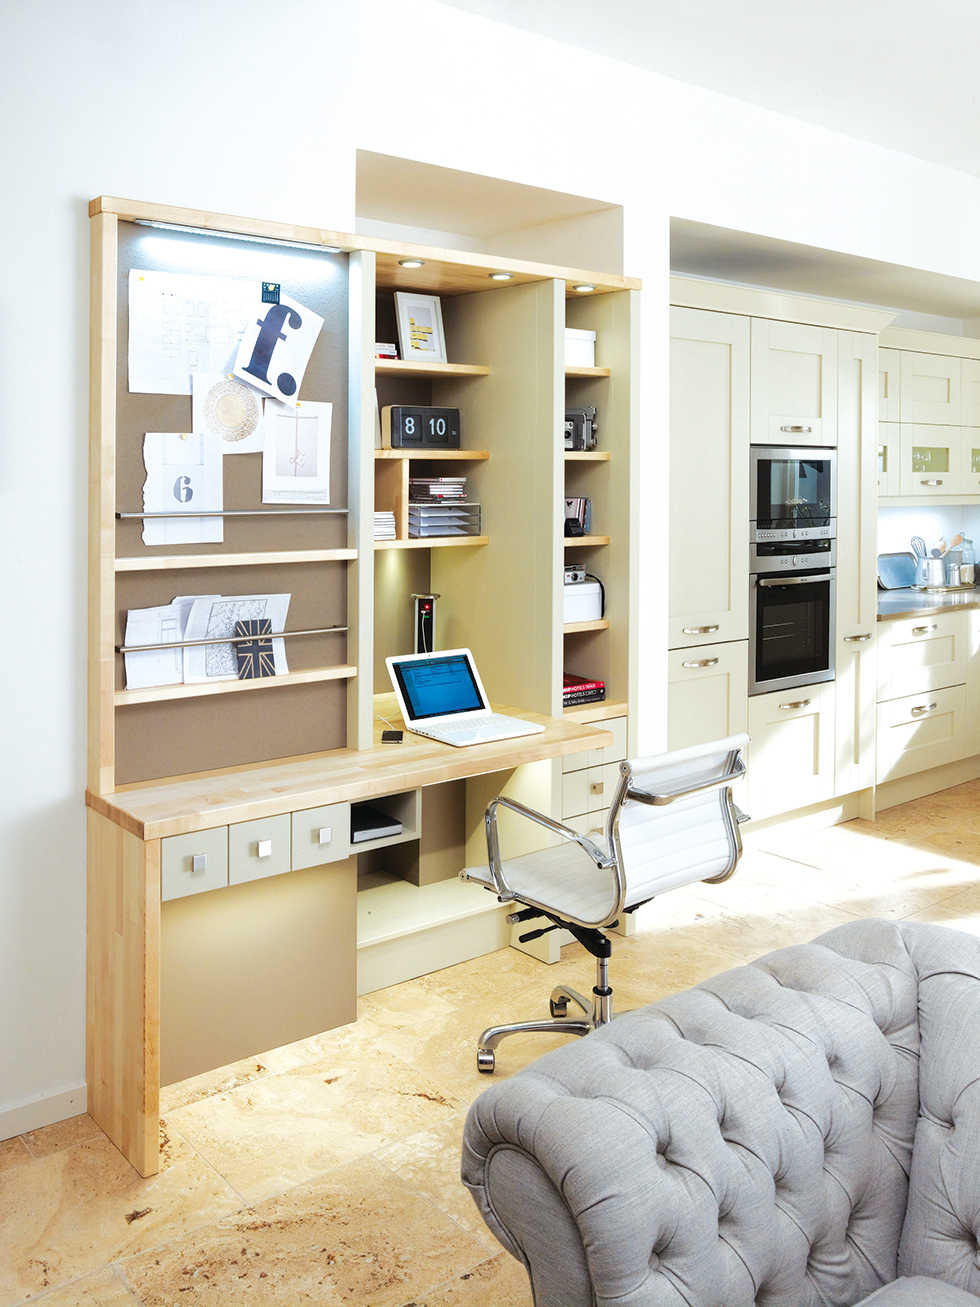 Milbourne cabinetry from Second Nature